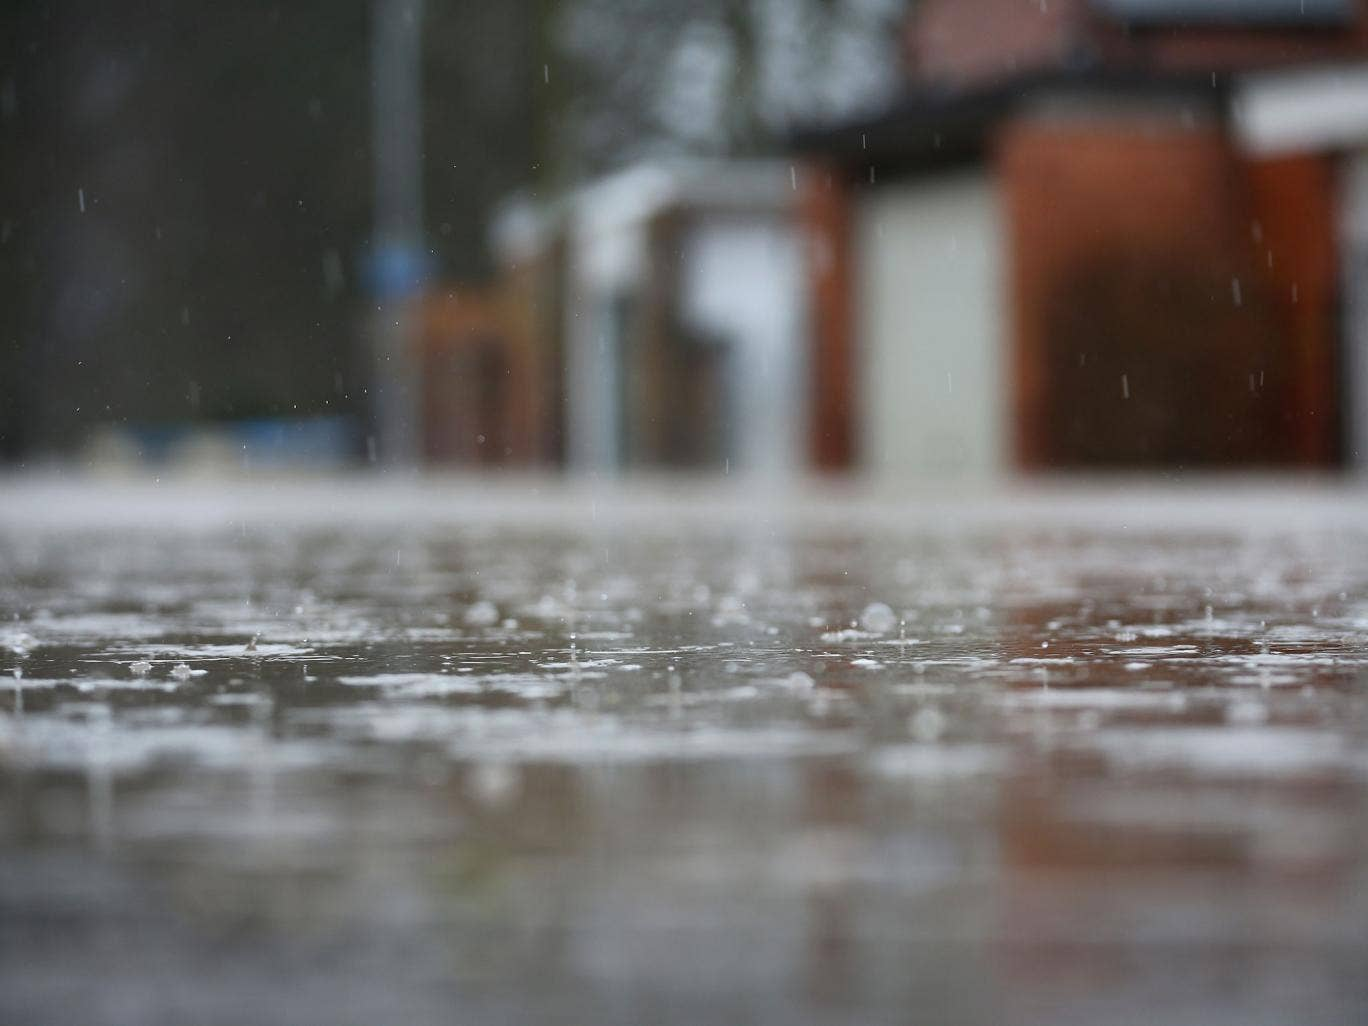 The rain continues to fall on a flooded street in Worcester on February 14, 2014 in Worcester, United Kingdom. Flood water has remained high in some areas and high winds are causing disruption to other parts of the UK with the Met Office issuing a red wea